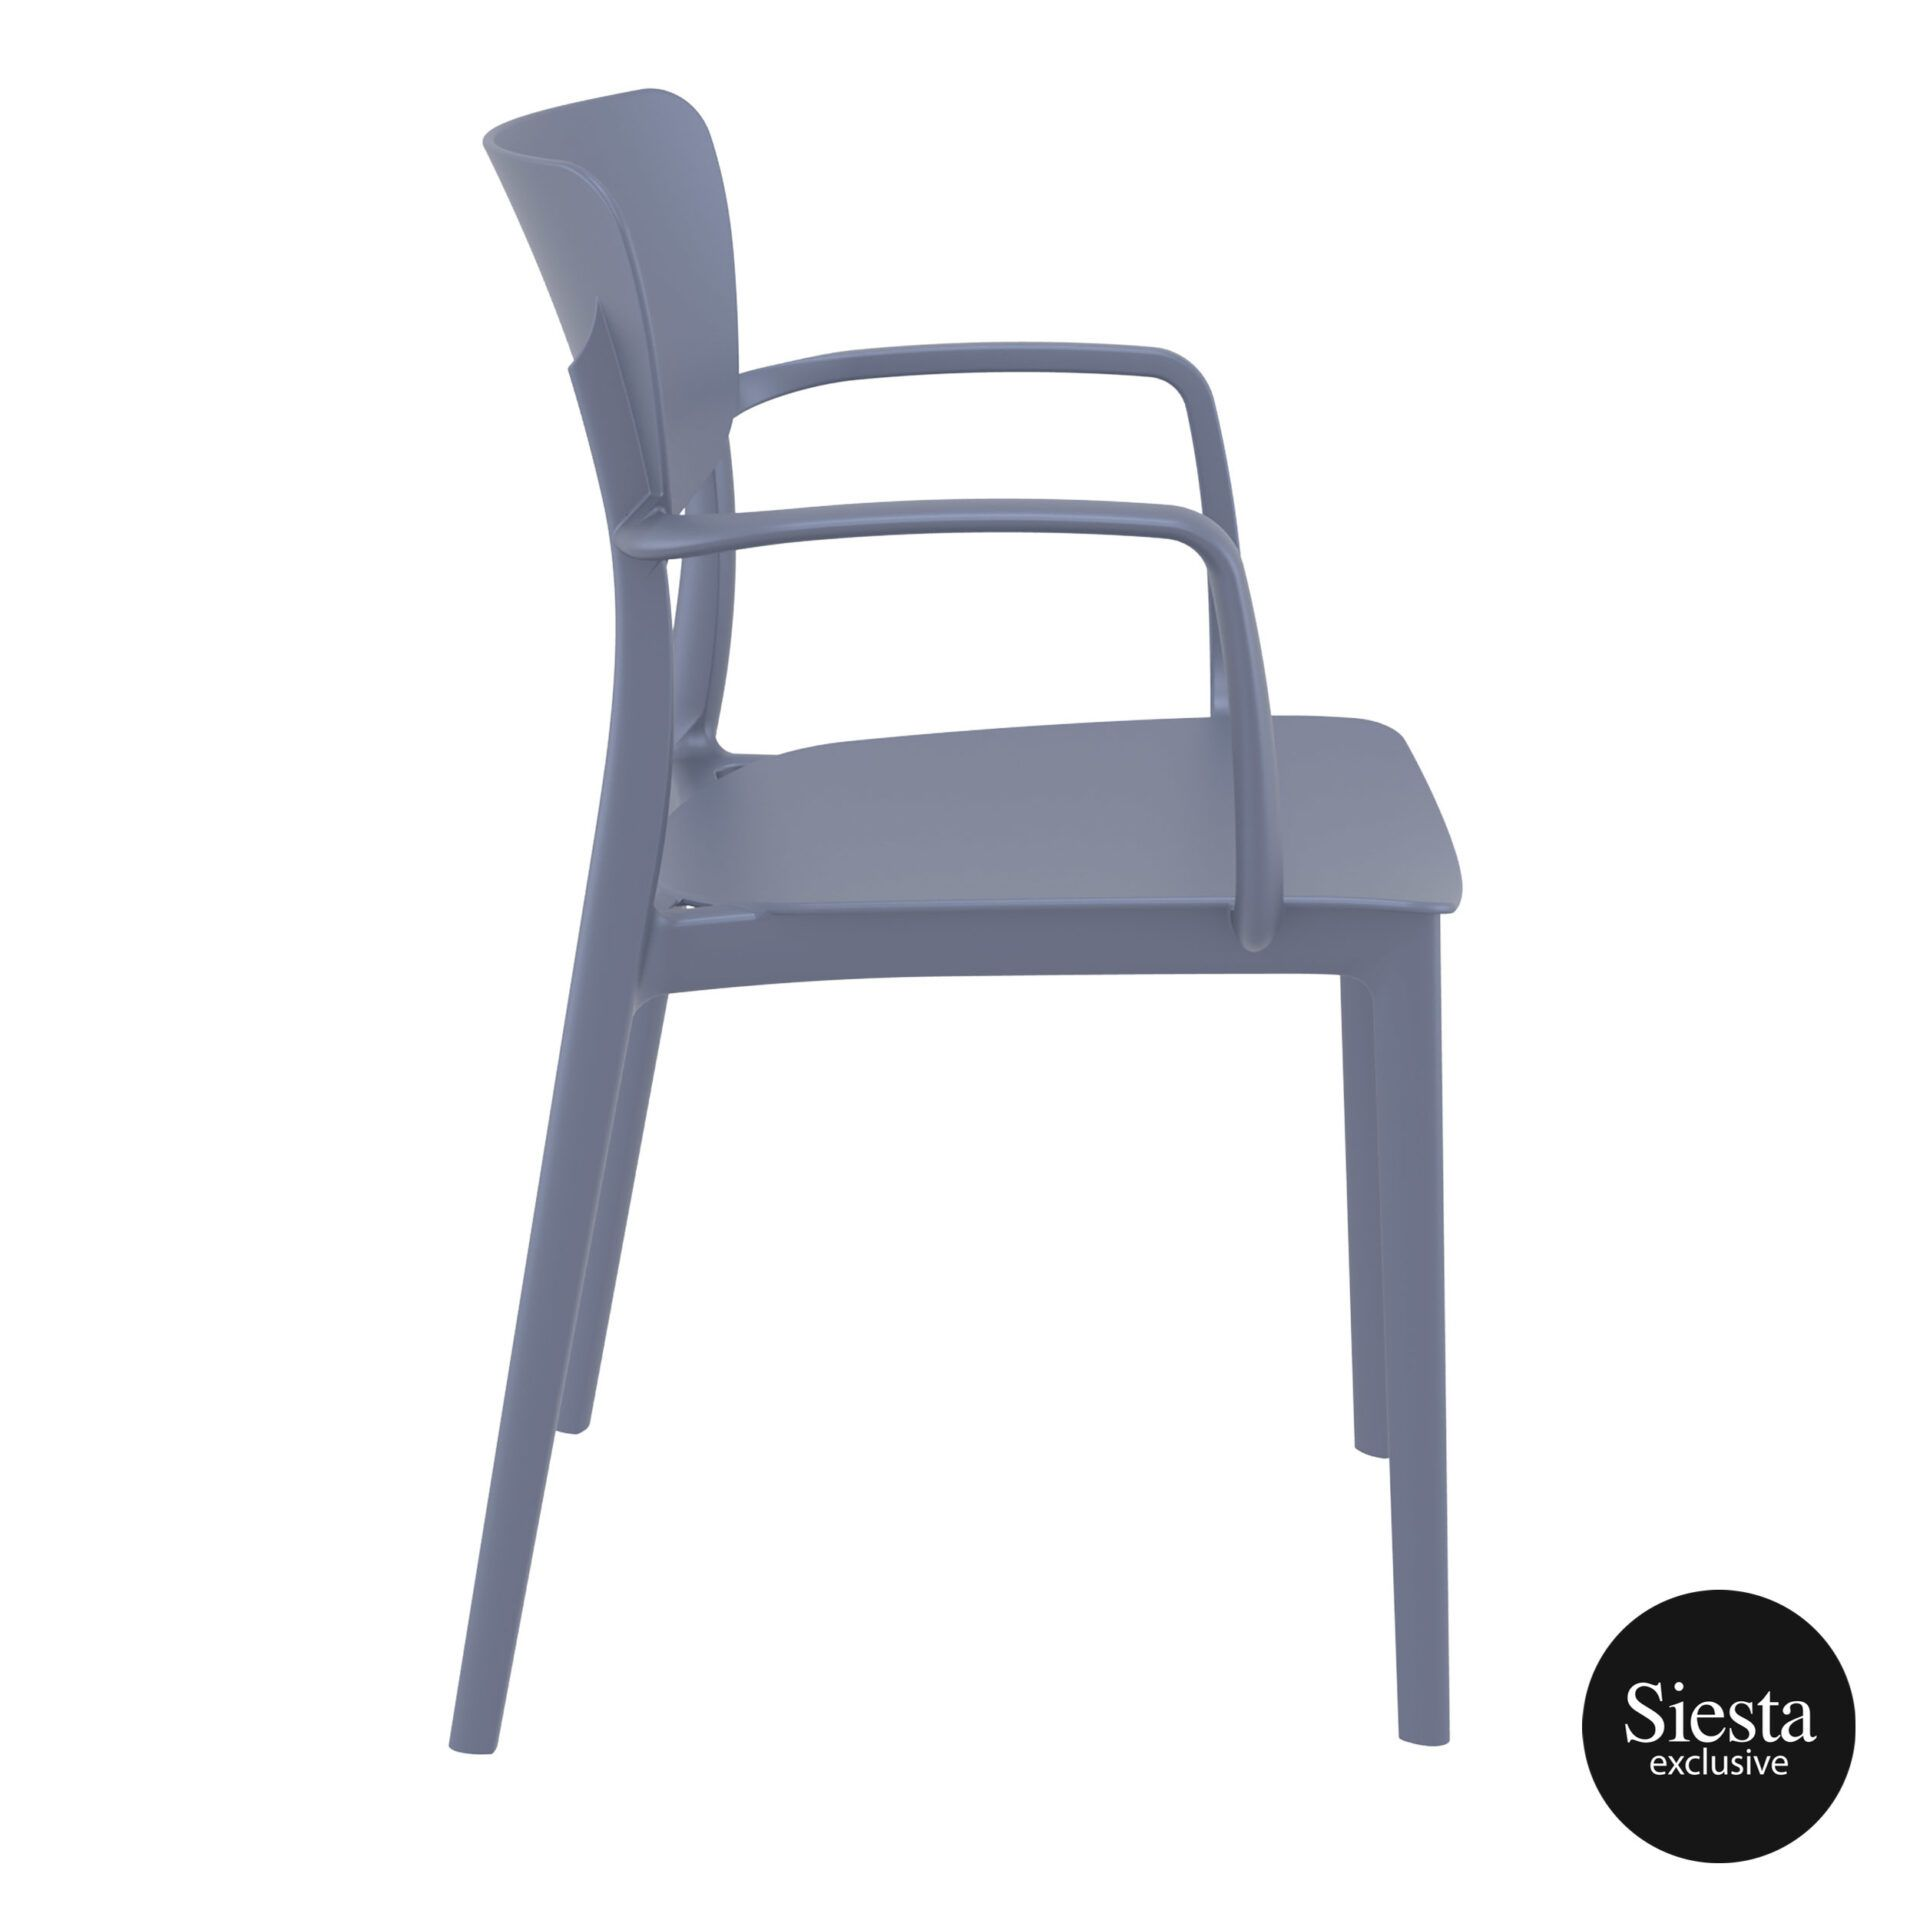 polypropylene hospitality seating lisa armchair darkgrey side 1